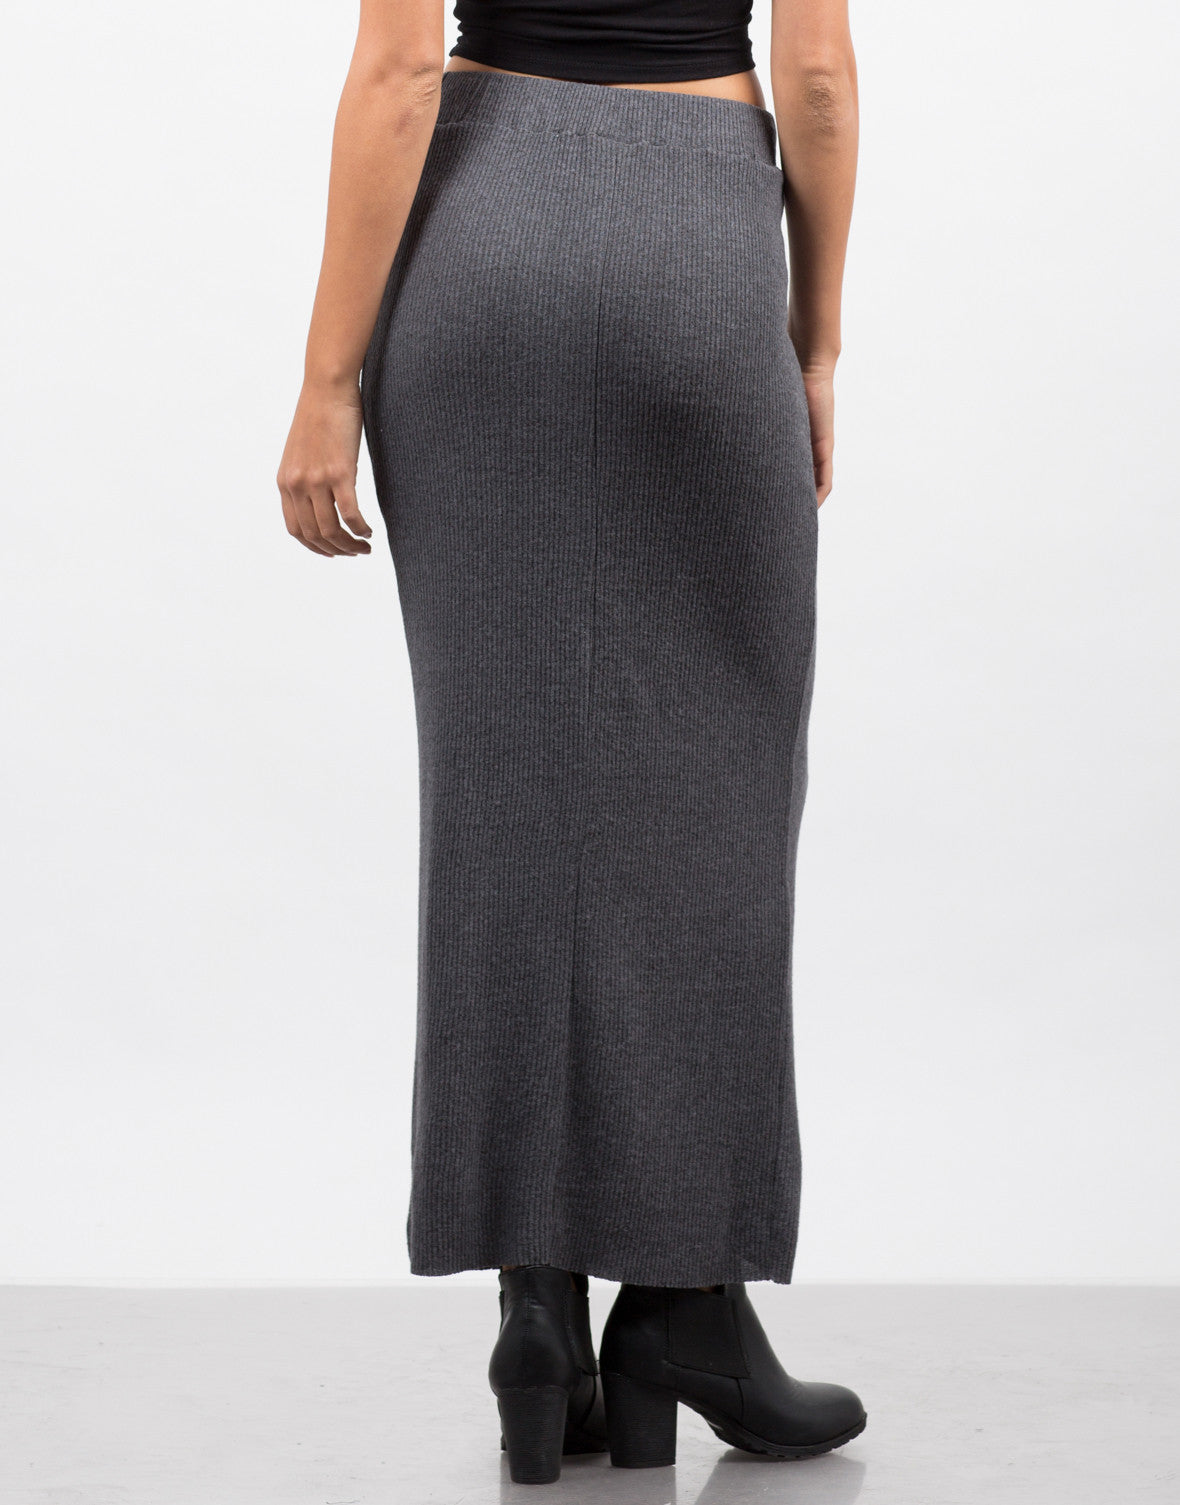 Back View of Ribbed Knit Maxi Skirt